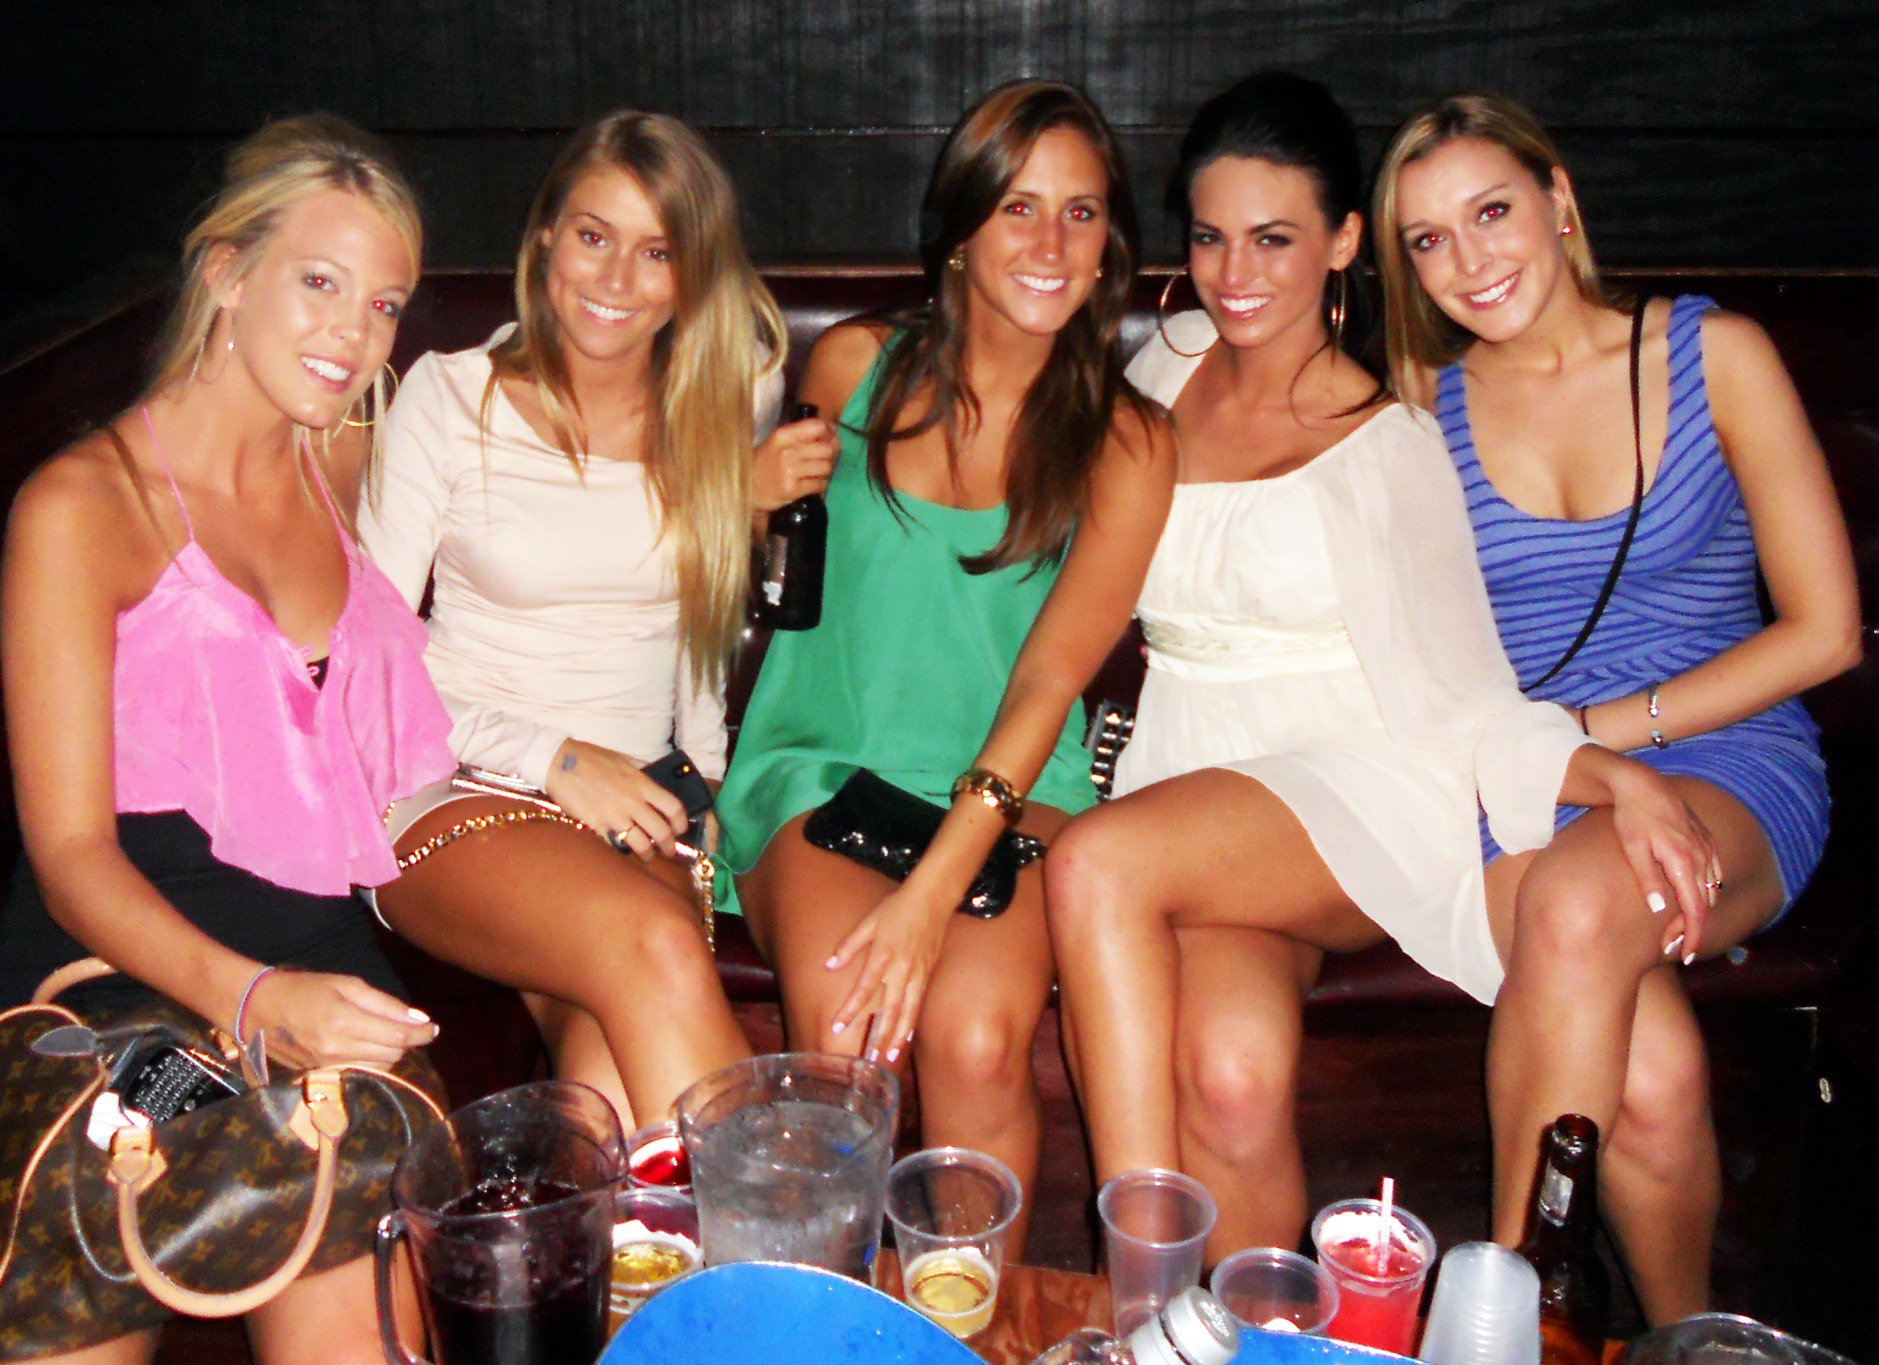 Hot Chicks Party photo 19